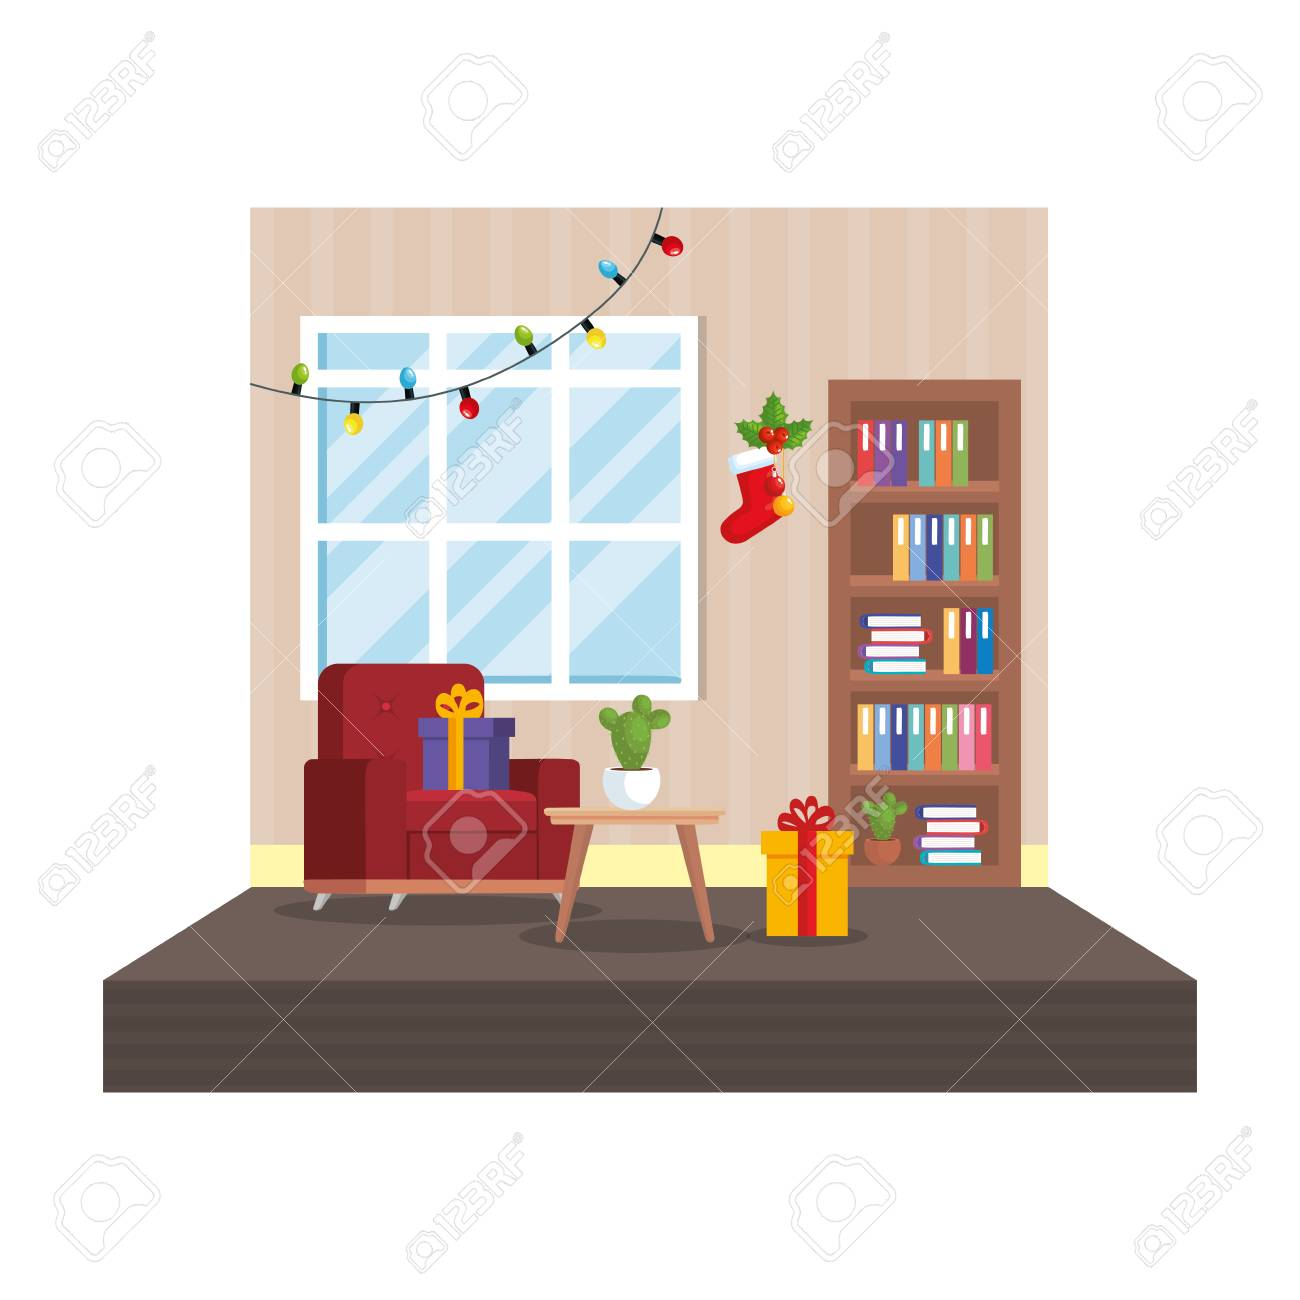 Living Room With Christmas Decoration Scene Vector Illustration